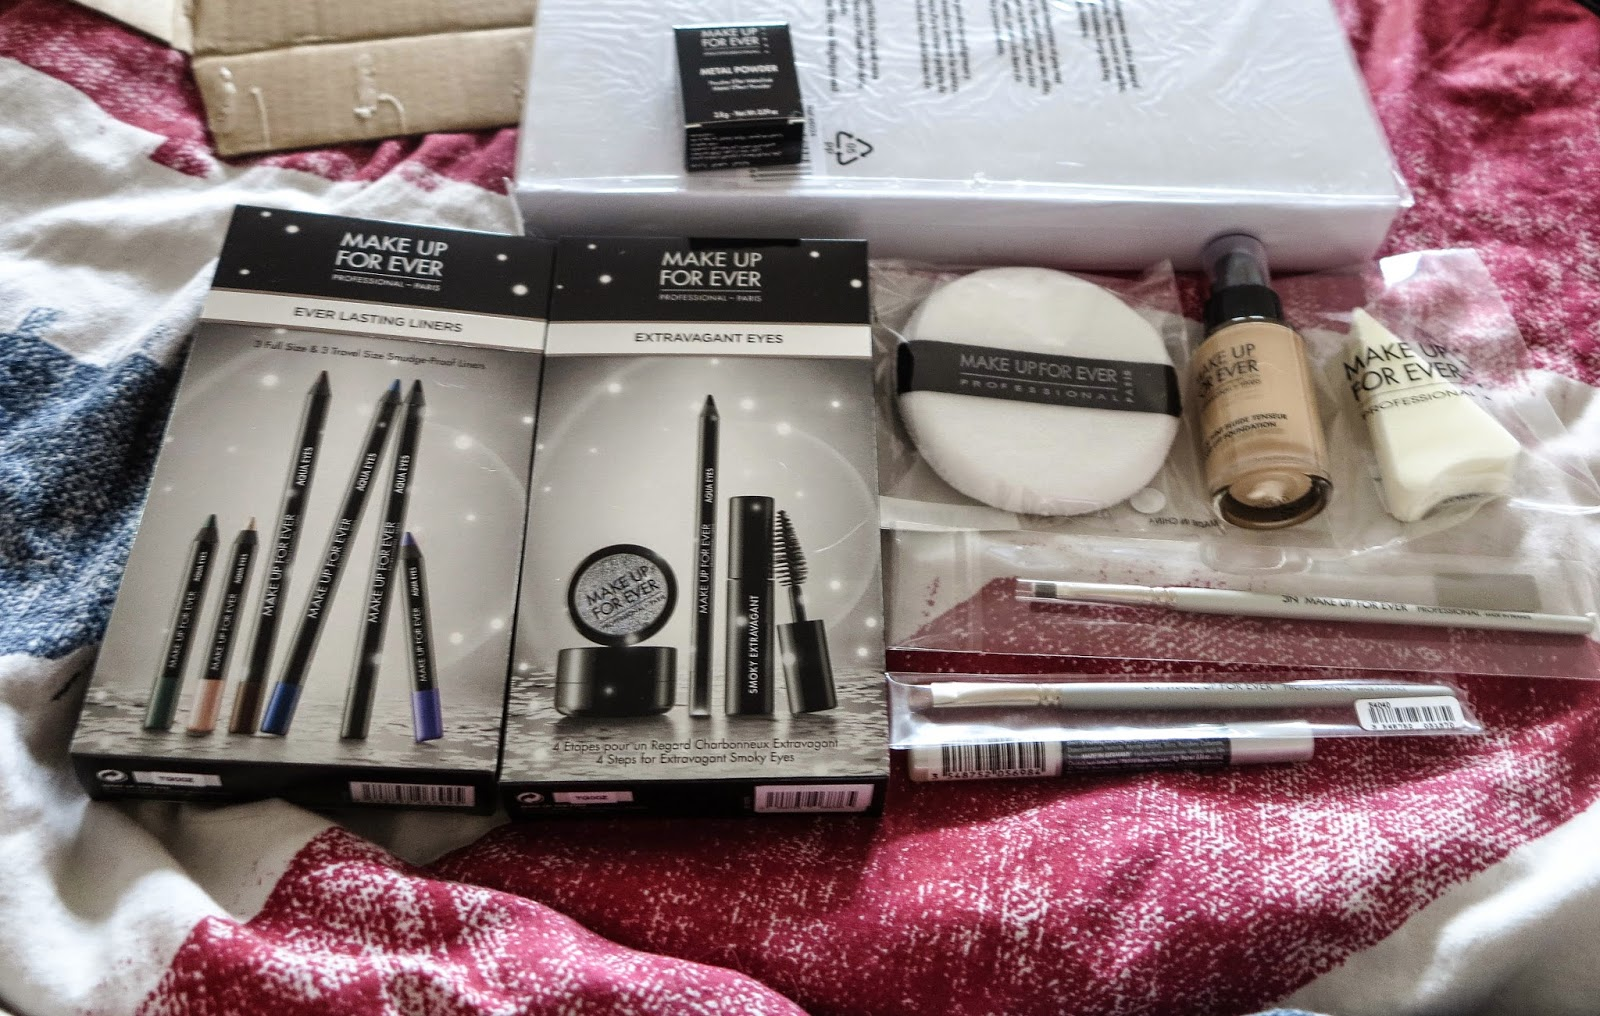 Ma commande make up for ever chez vente priv e evasion beaut - Vente privee annuler commande ...